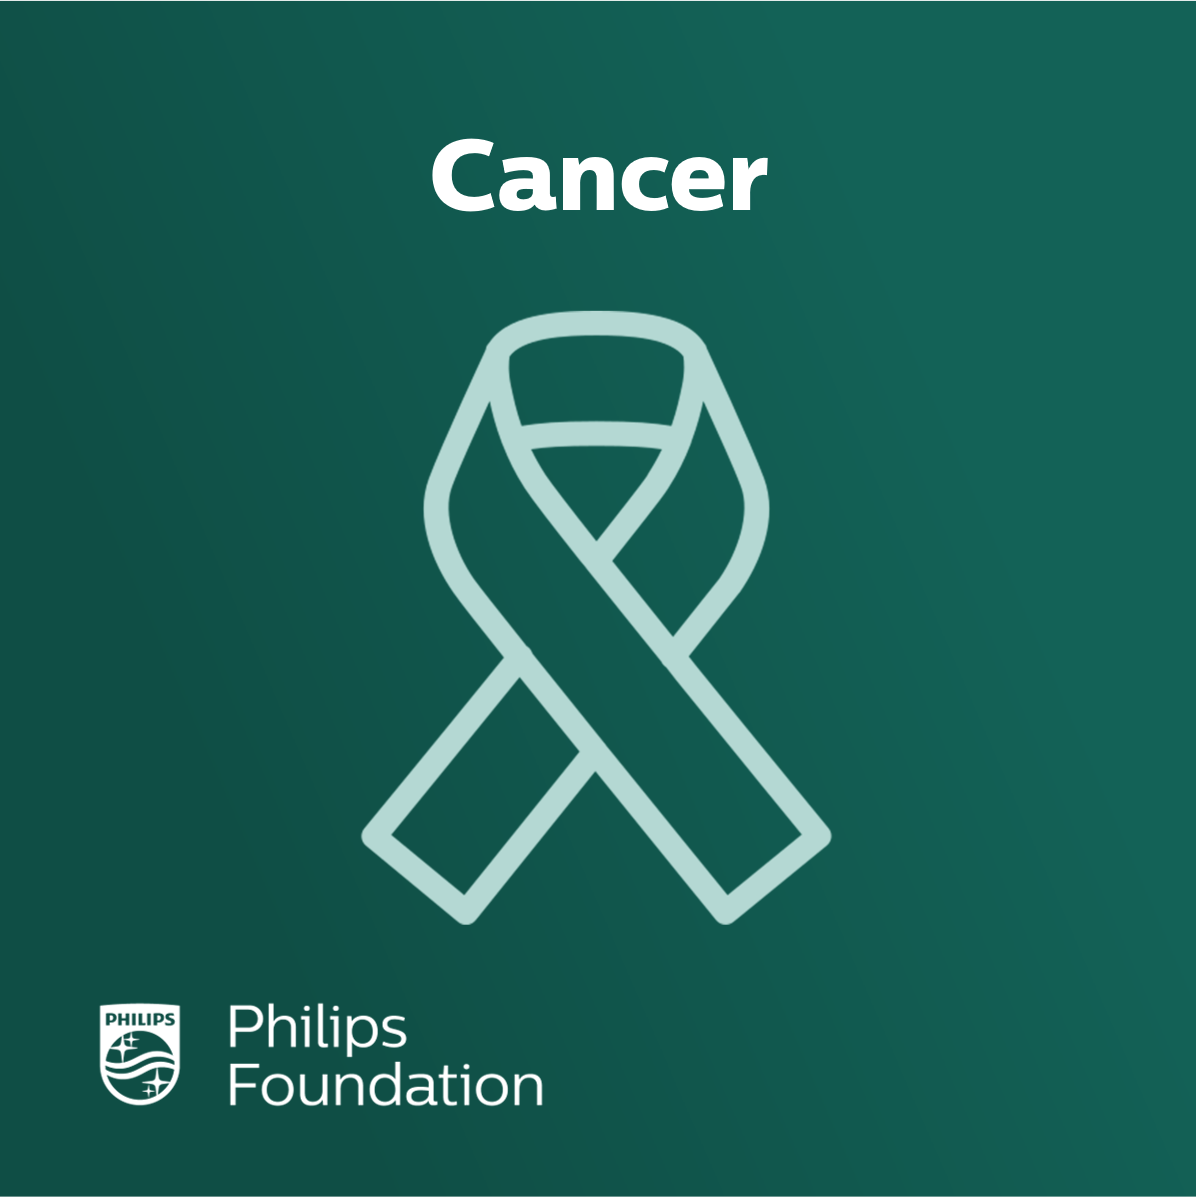 philips_foundation_cancer_icon